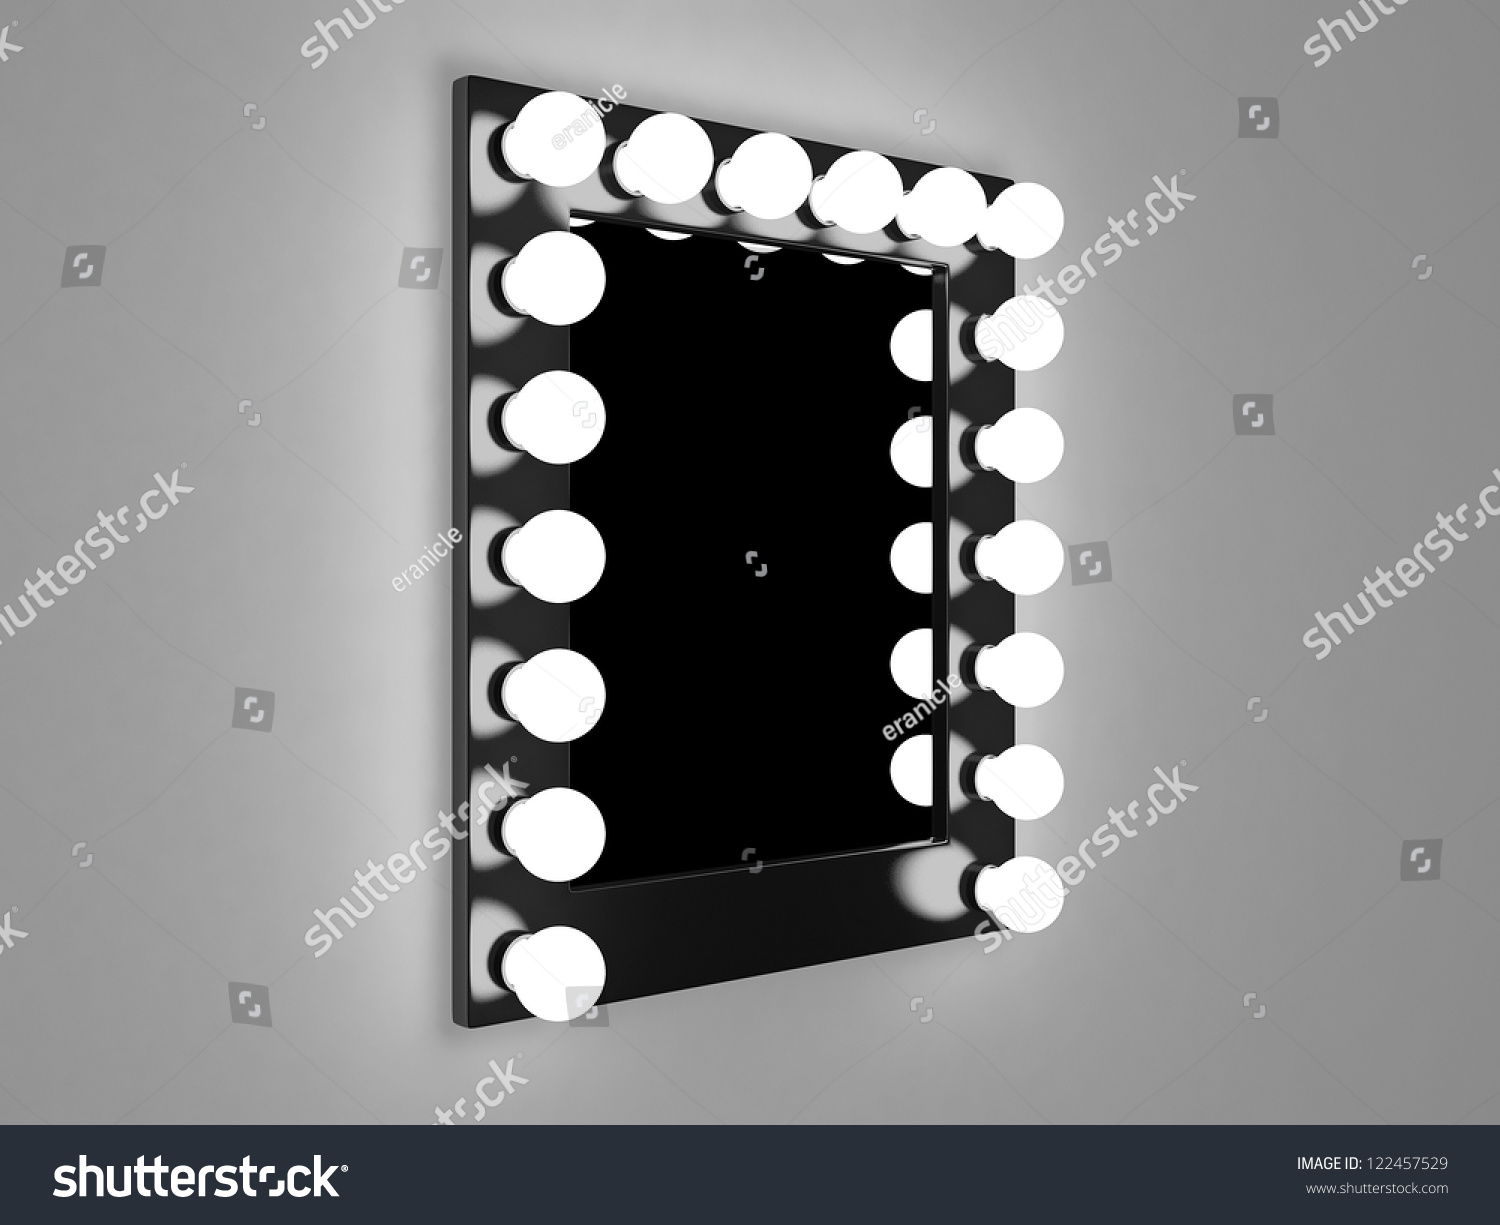 3d Illustration Of Mirror With Bulbs For Makeup - 122457529 ...:Save to a lightbox,Lighting